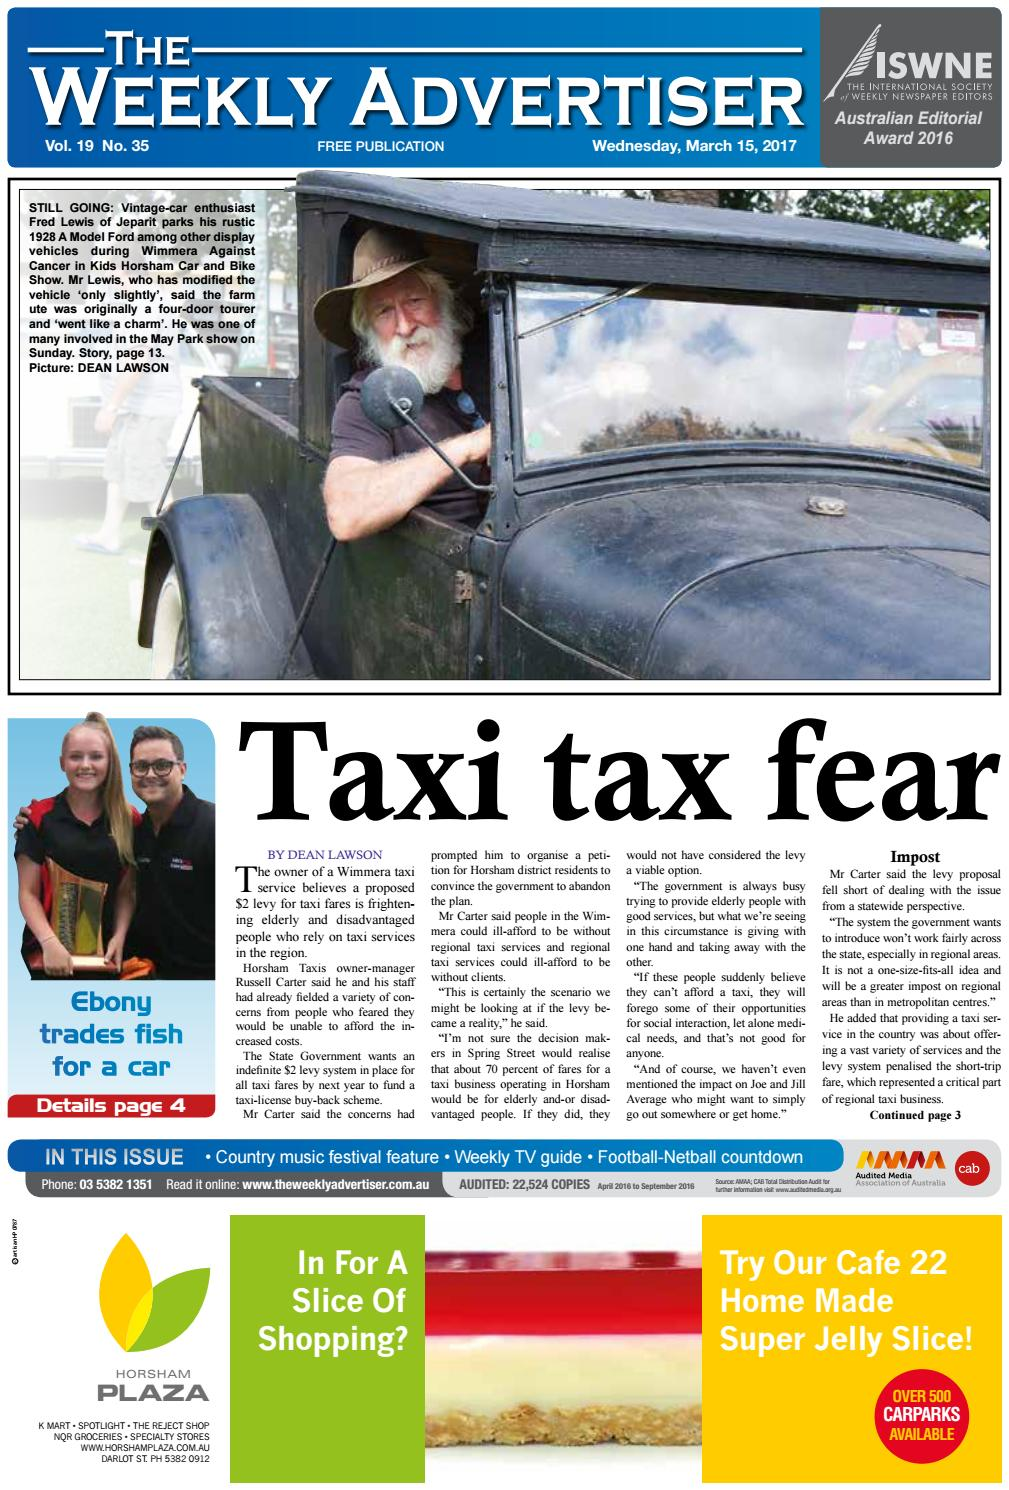 bece5024354303 The Weekly Advertiser - Wednesday, March 15, 2017 by The Weekly Advertiser  - issuu